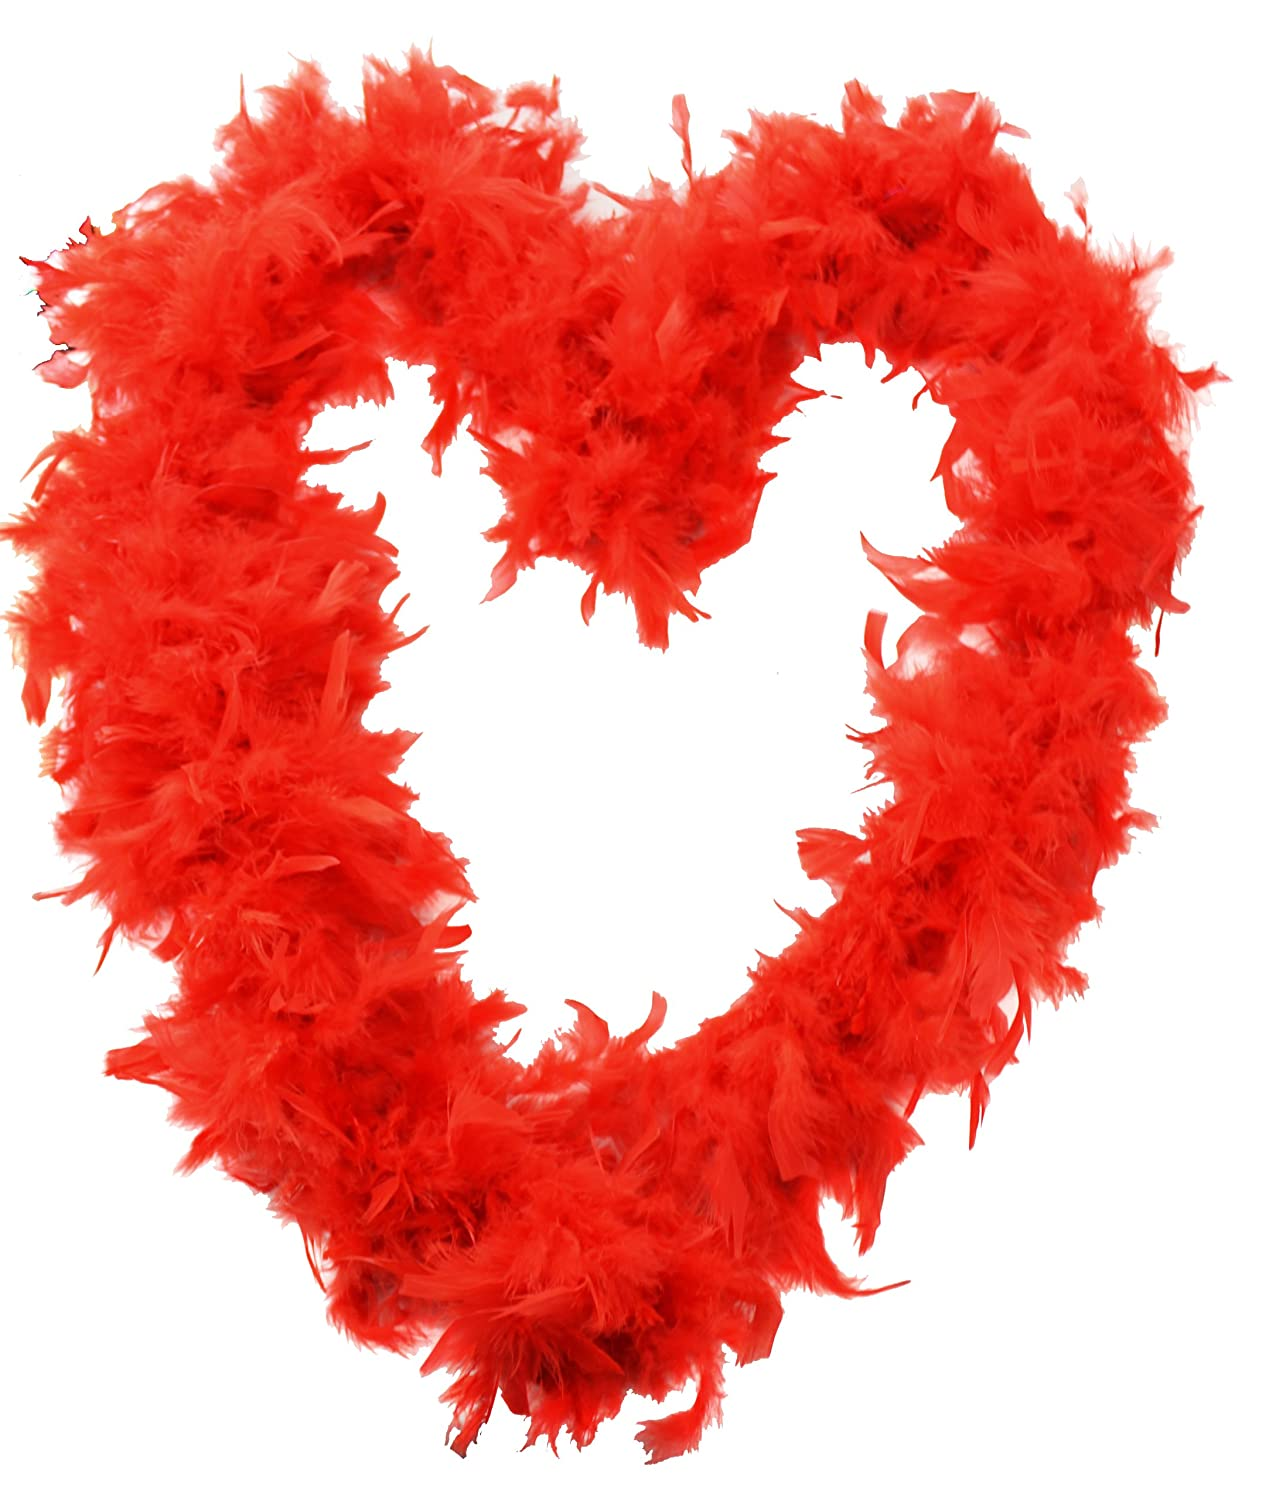 12 X FEATHER BOA 65G THICK HEN NIGHT ACCESSORY FANCY DRESS FLAPPER BOAS IN 10 COLOURS 1920'S BURLESQUE FEATHERS (BLACK WHITE MIX) 12XILFD2046